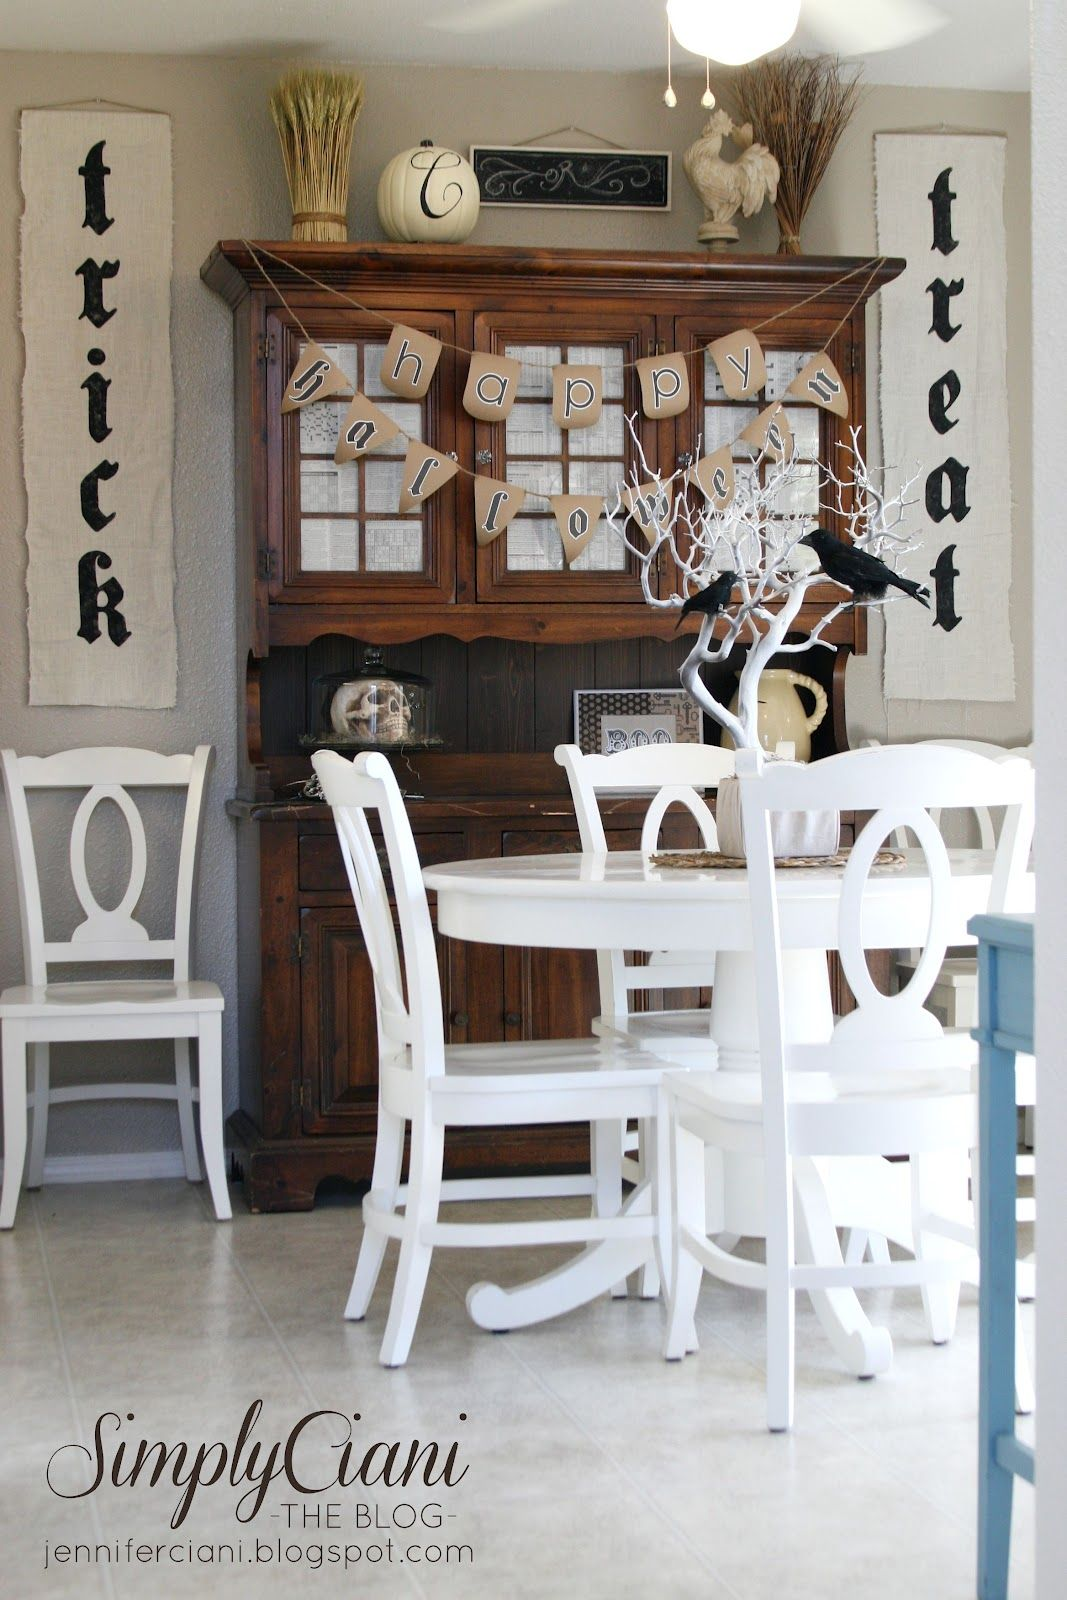 1570603339 670 cool black and white decor ideas for halloween - Cool Black And White Decor Ideas for Halloween